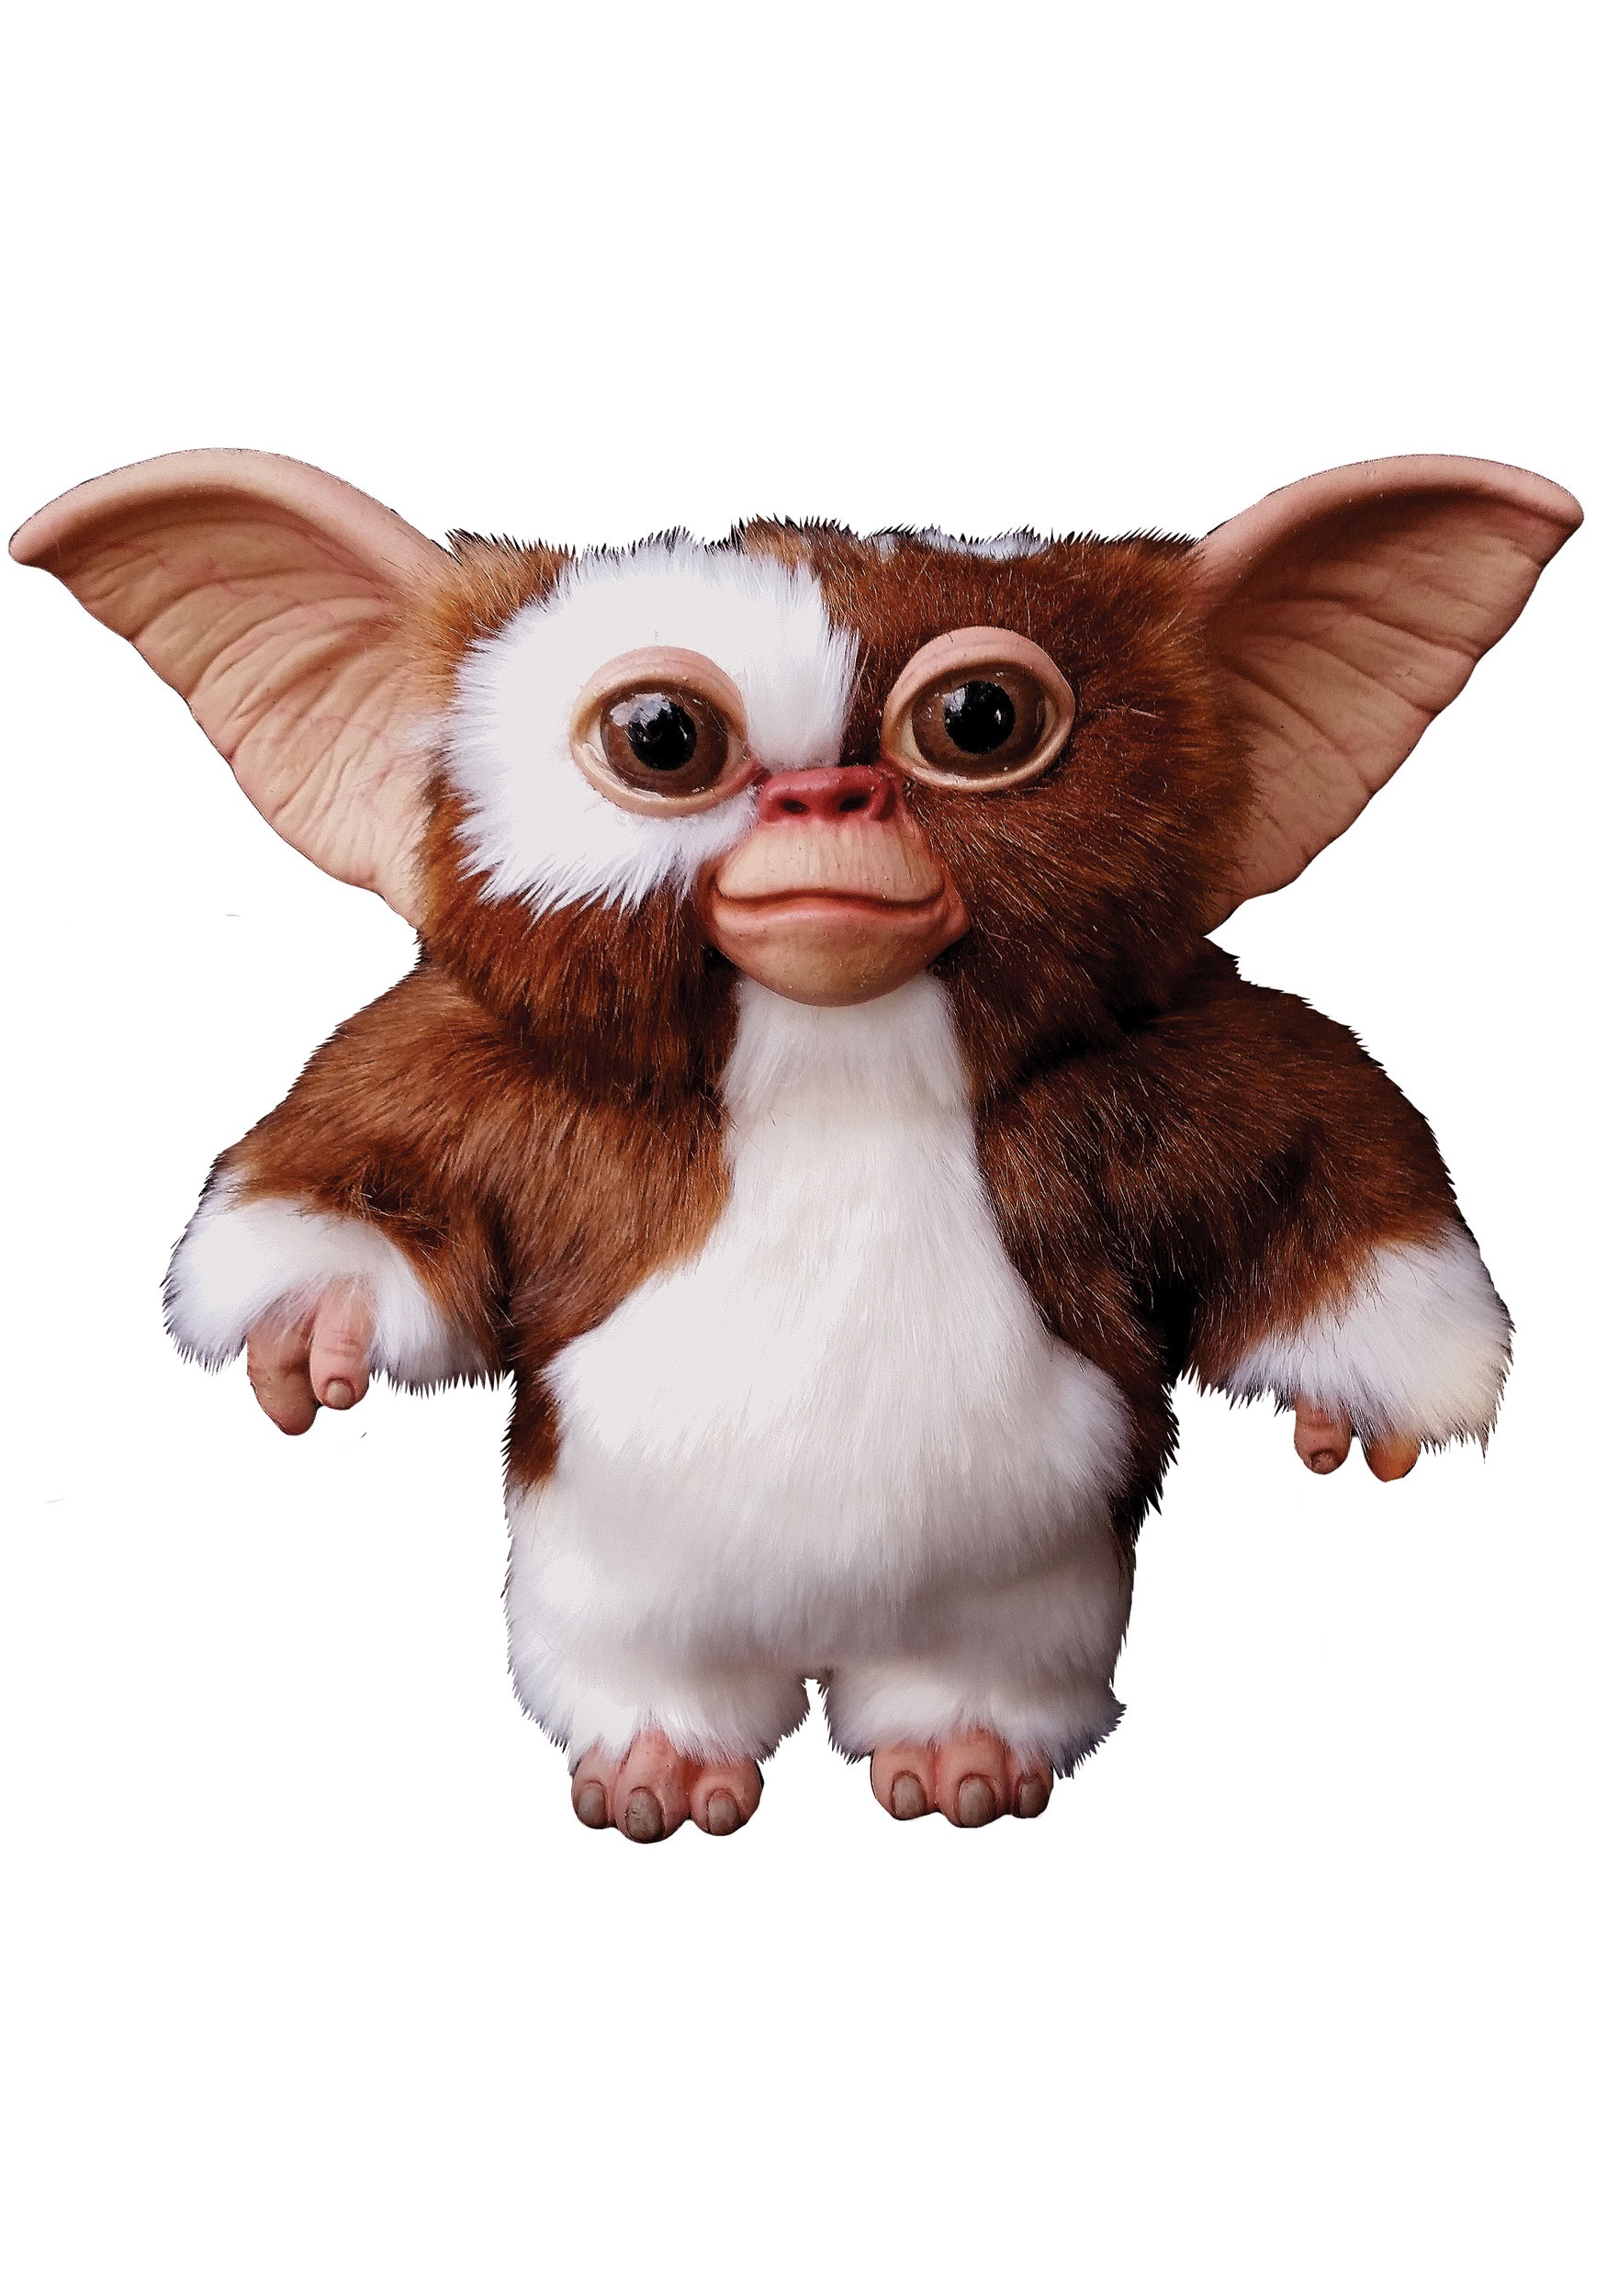 captain-gizmo.png